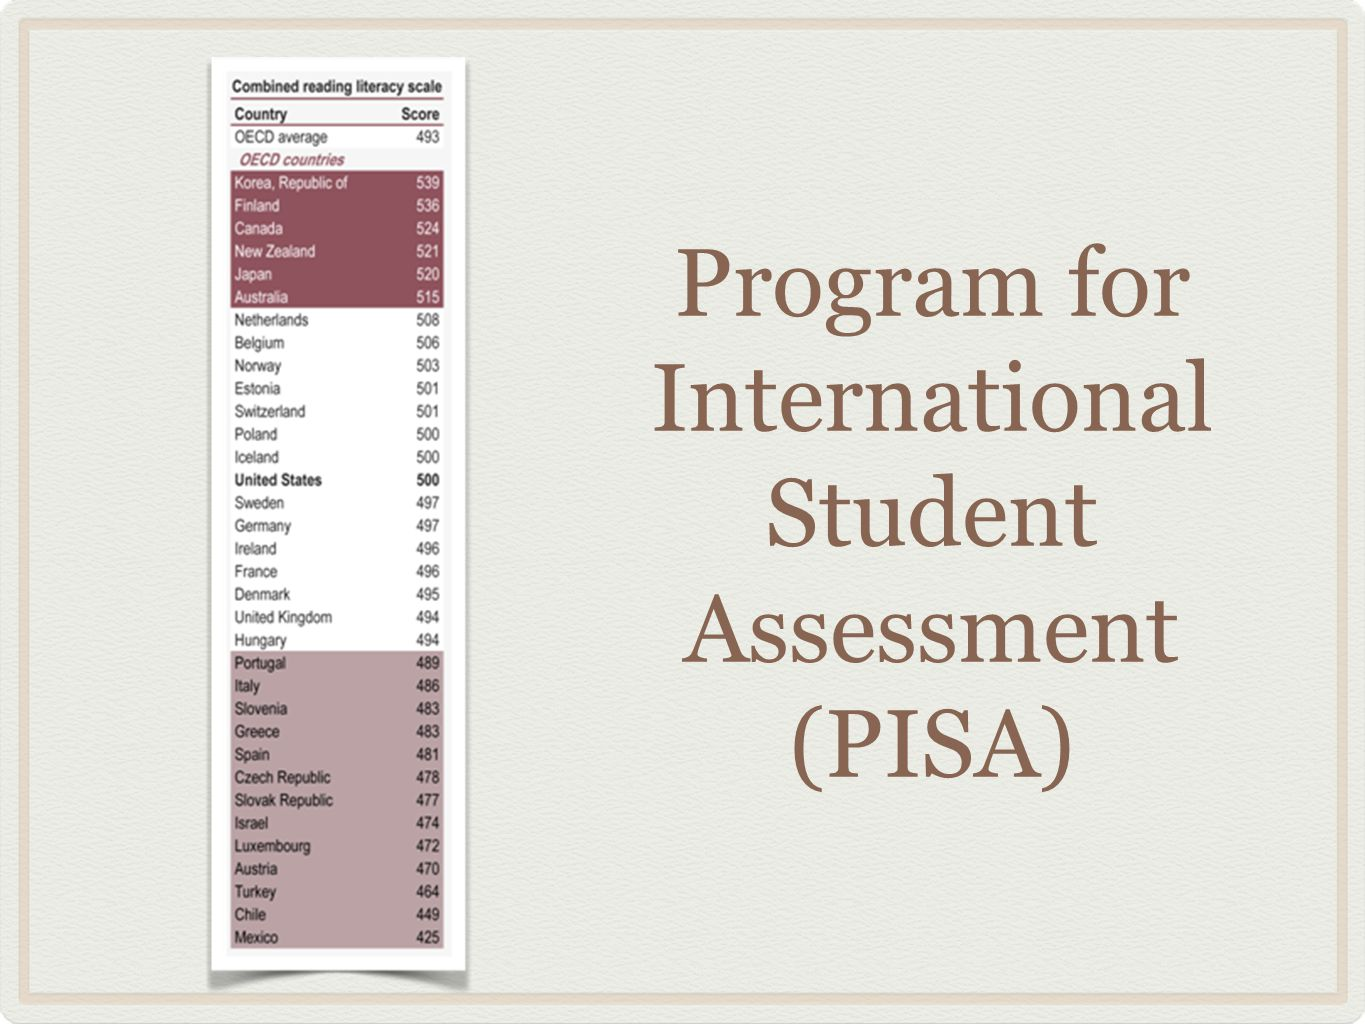 Program for International Student Assessment (PISA)